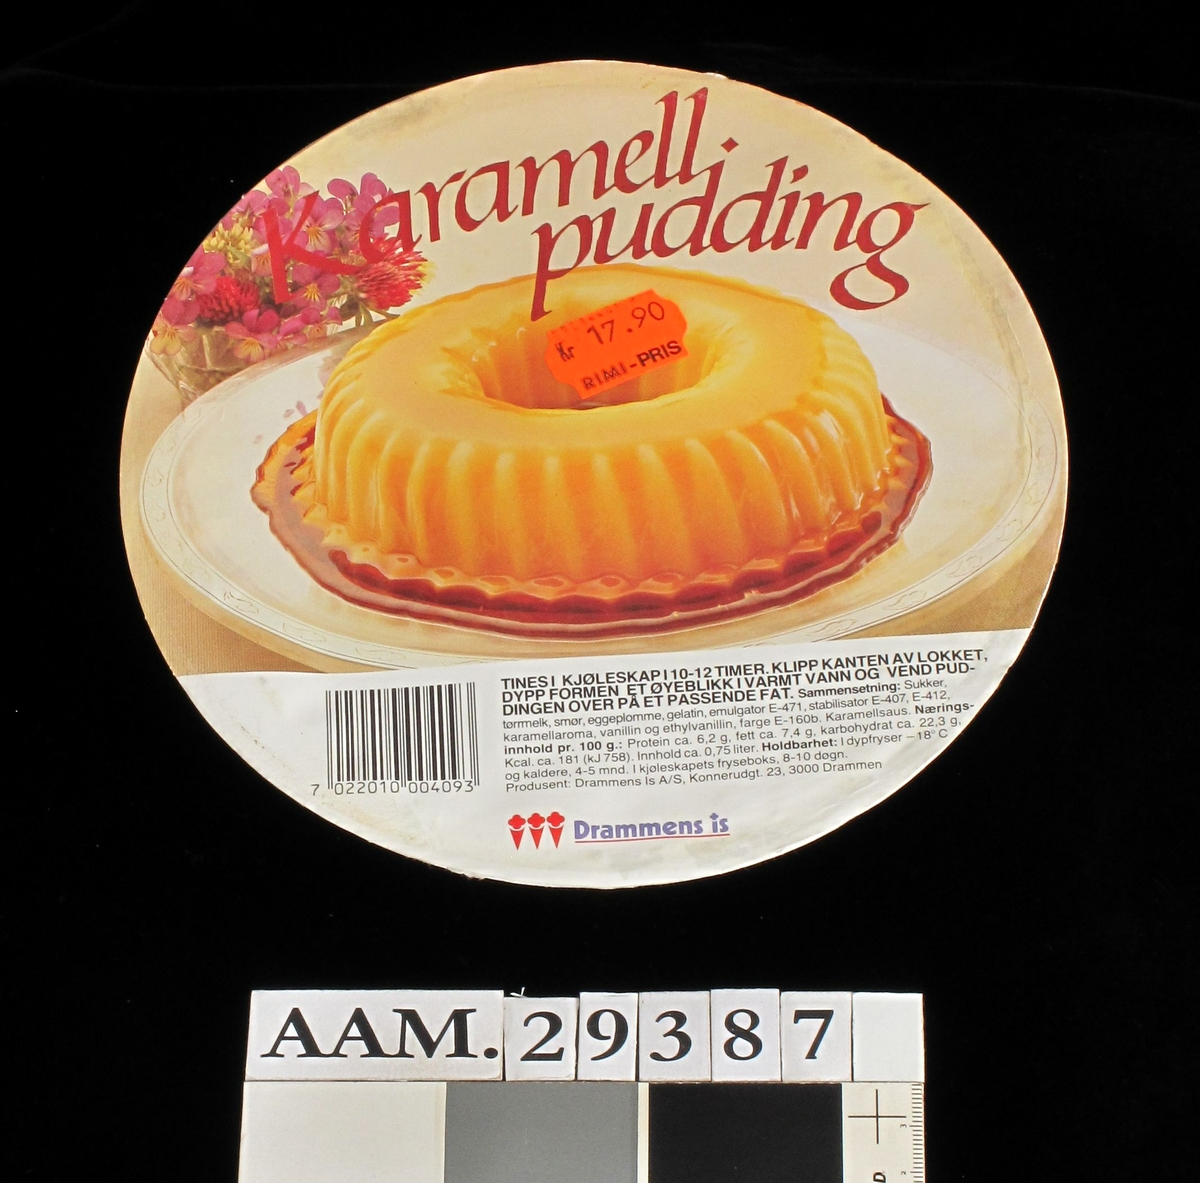 Karamellpudding på fat.